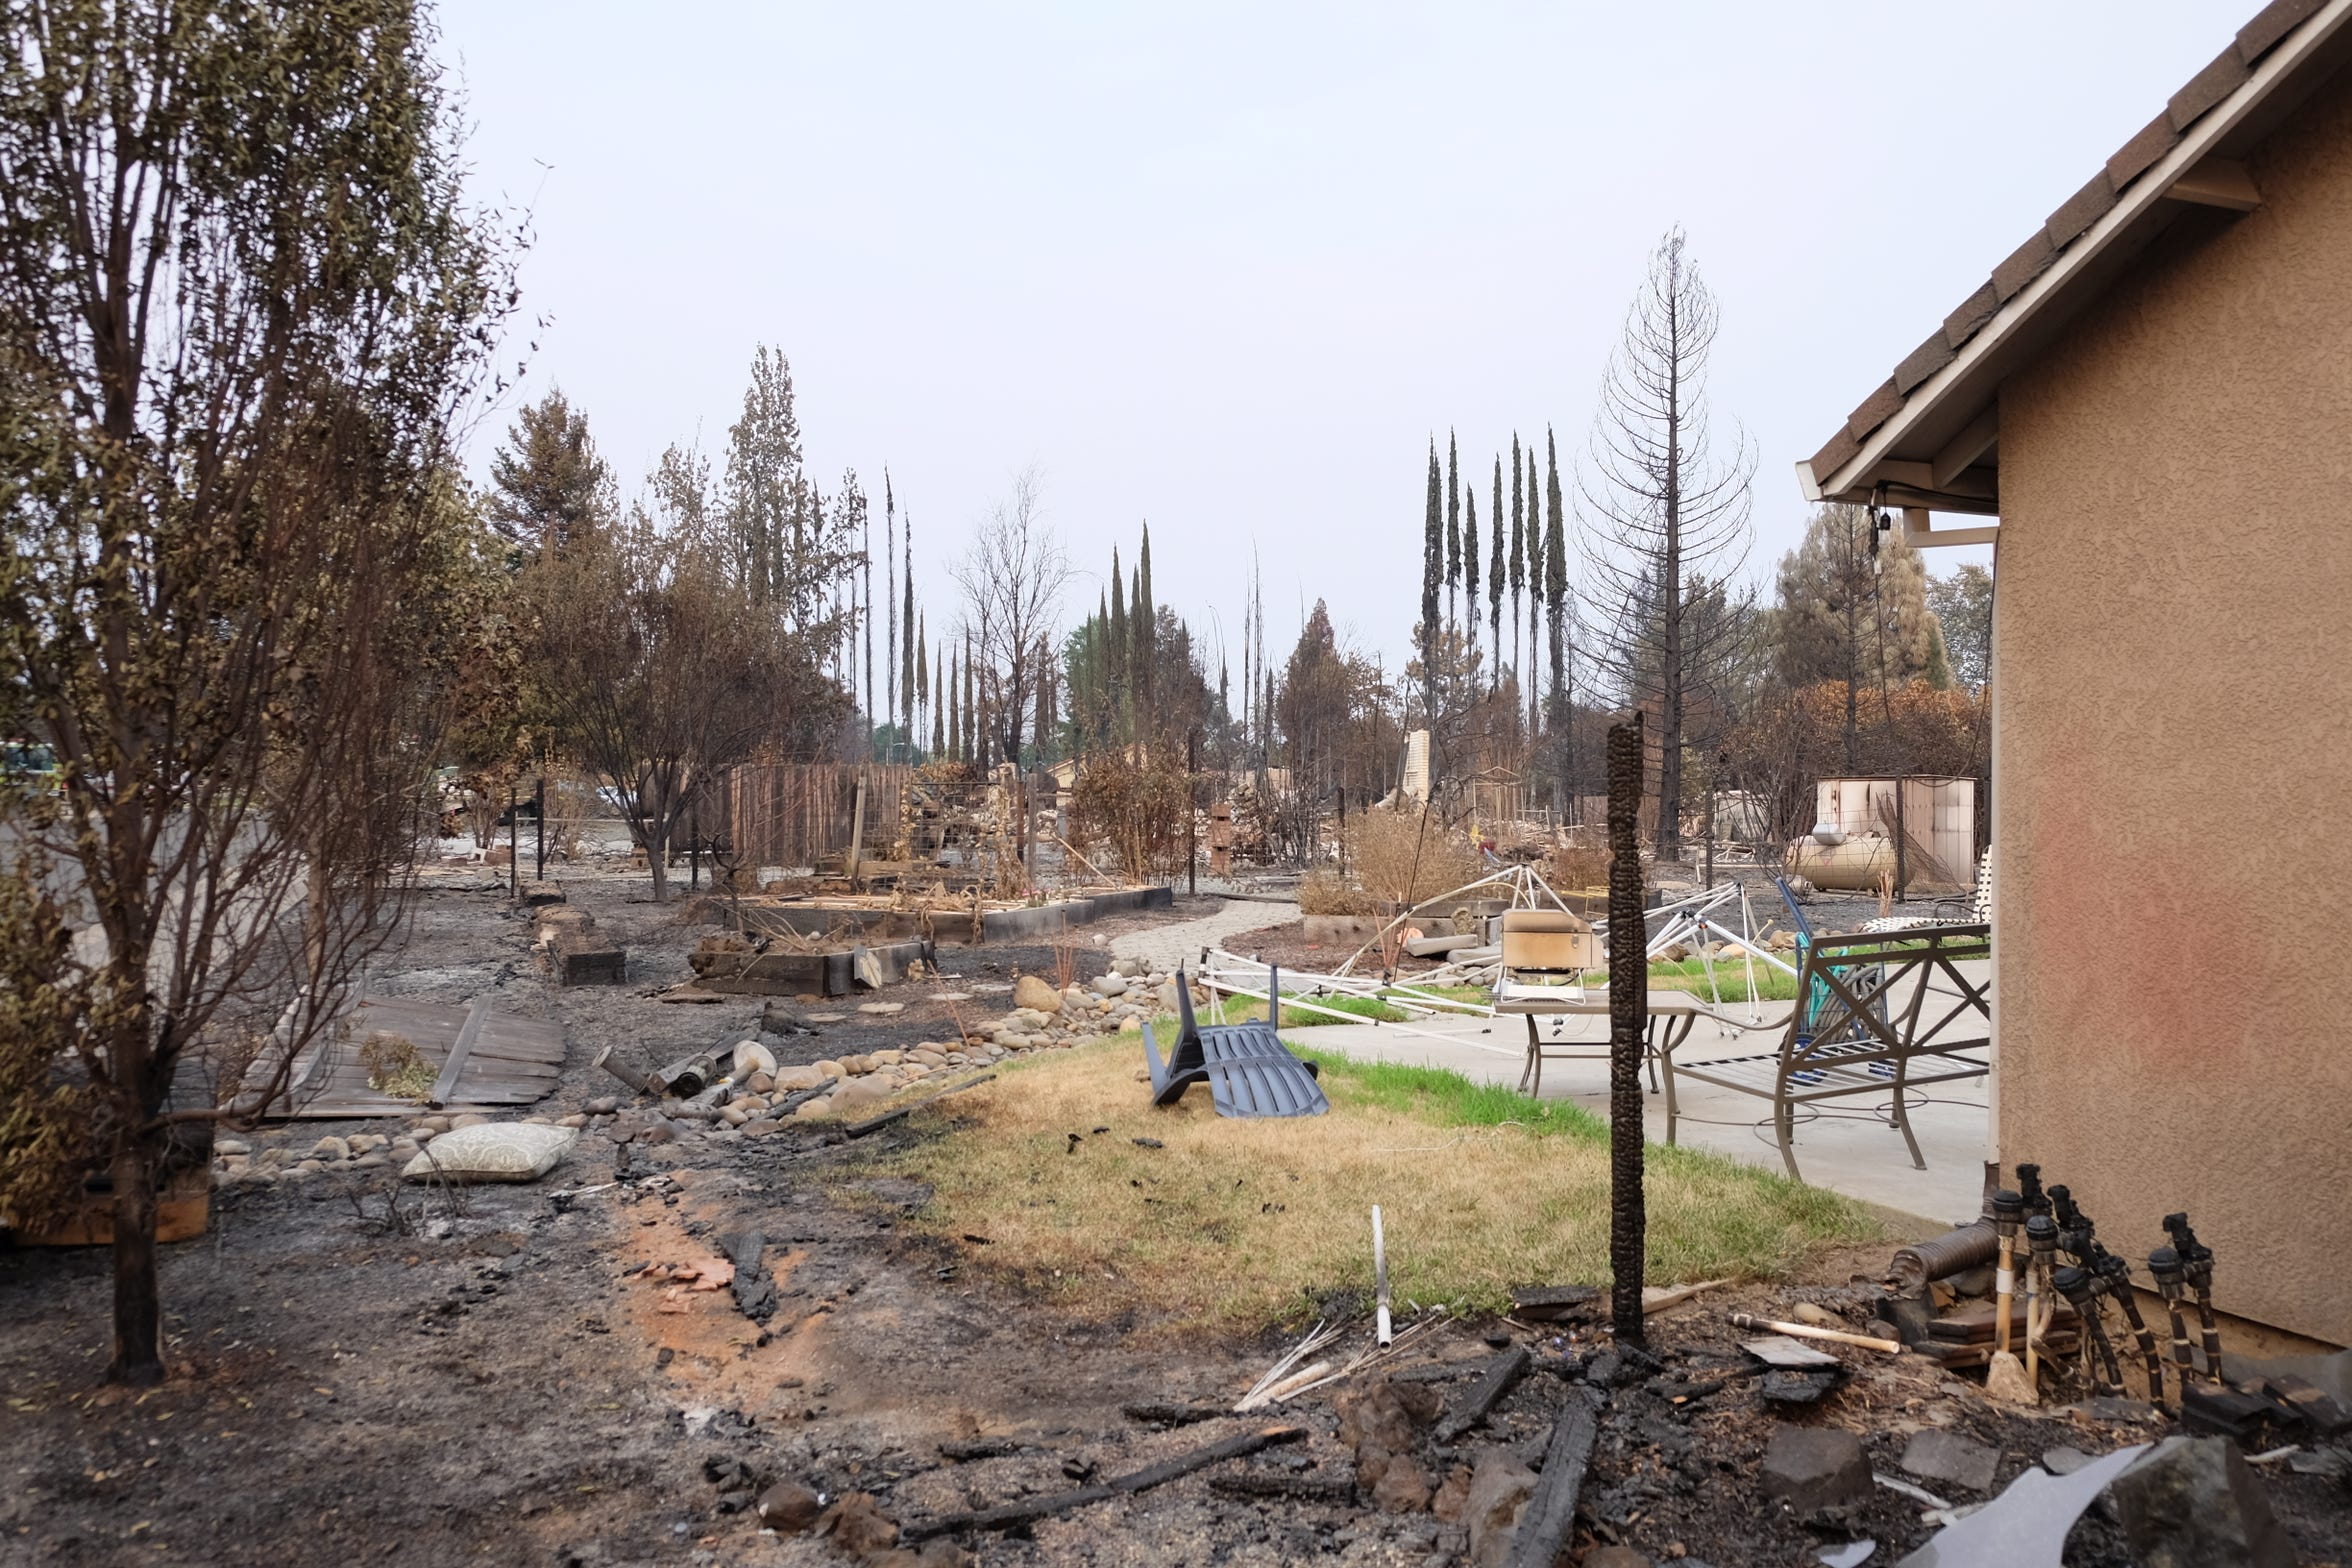 The Carr Fire burned the back and side yards but avoided the home of the Robinsons.